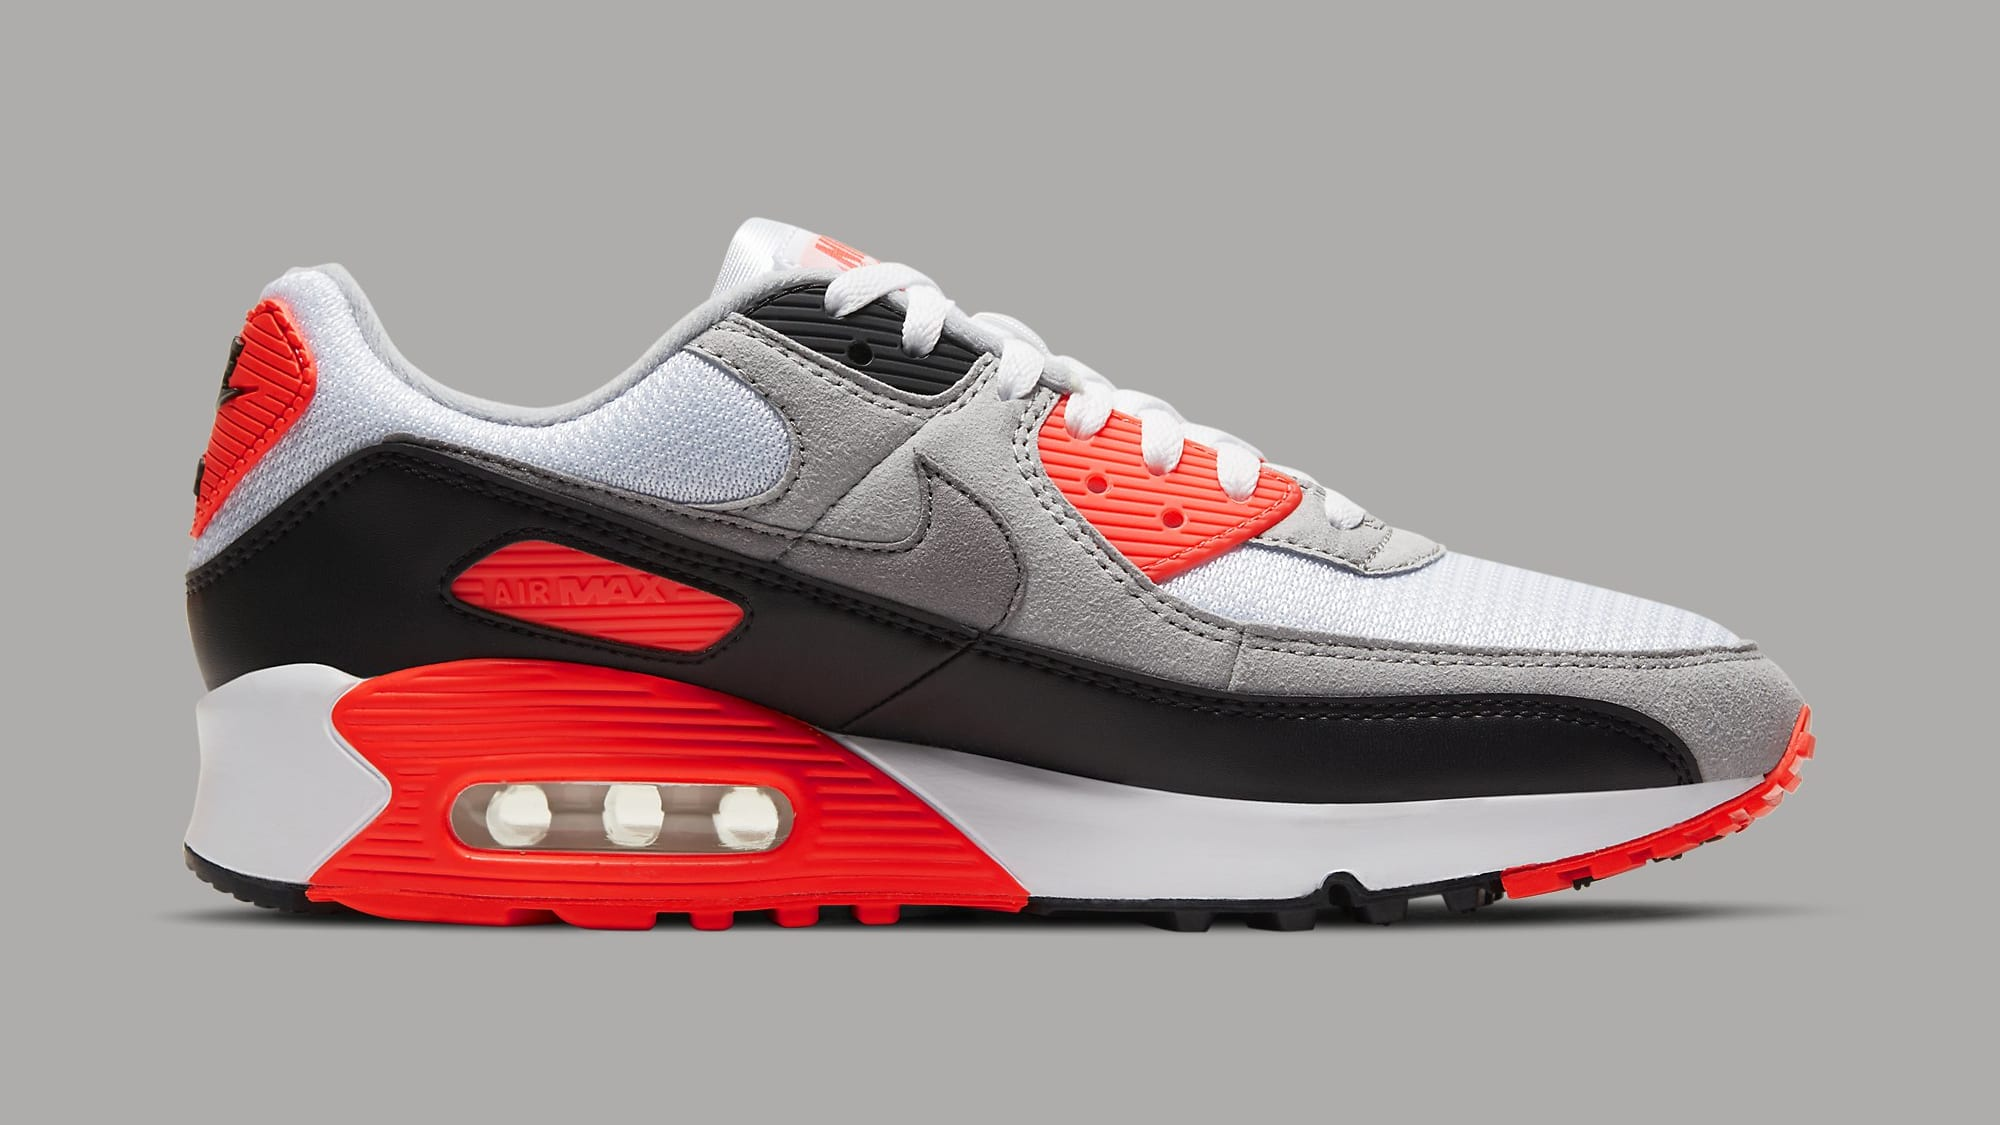 Nike Air Max 90 'Infrared' CT1685-100 Medial